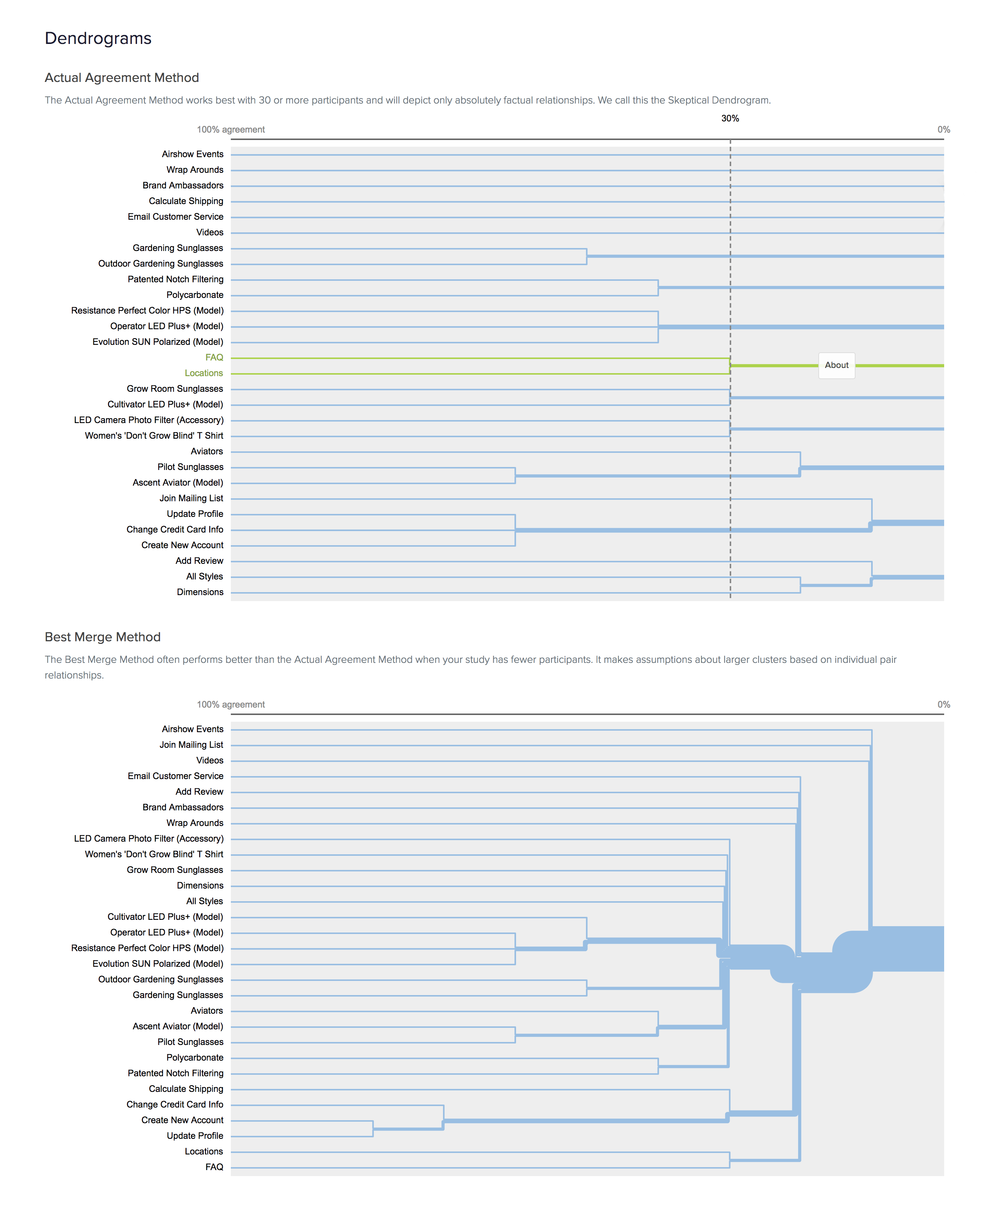 card sort analysis results - dendograms agreement.png